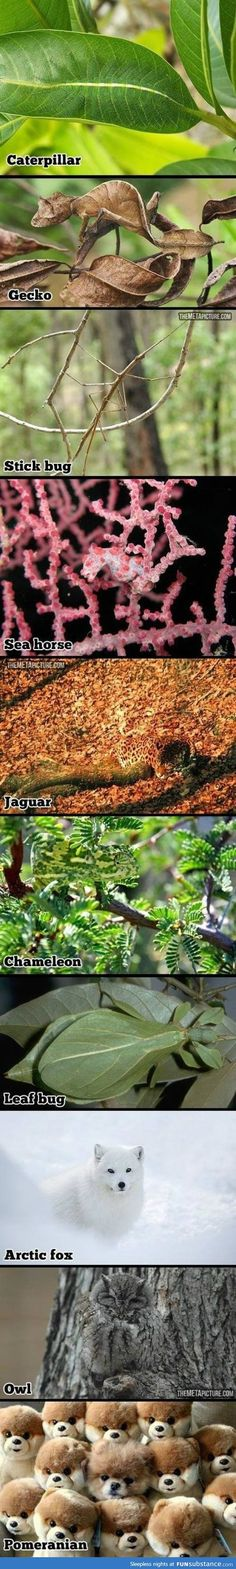 Camouflaged animals Awwww the last one is kawaii